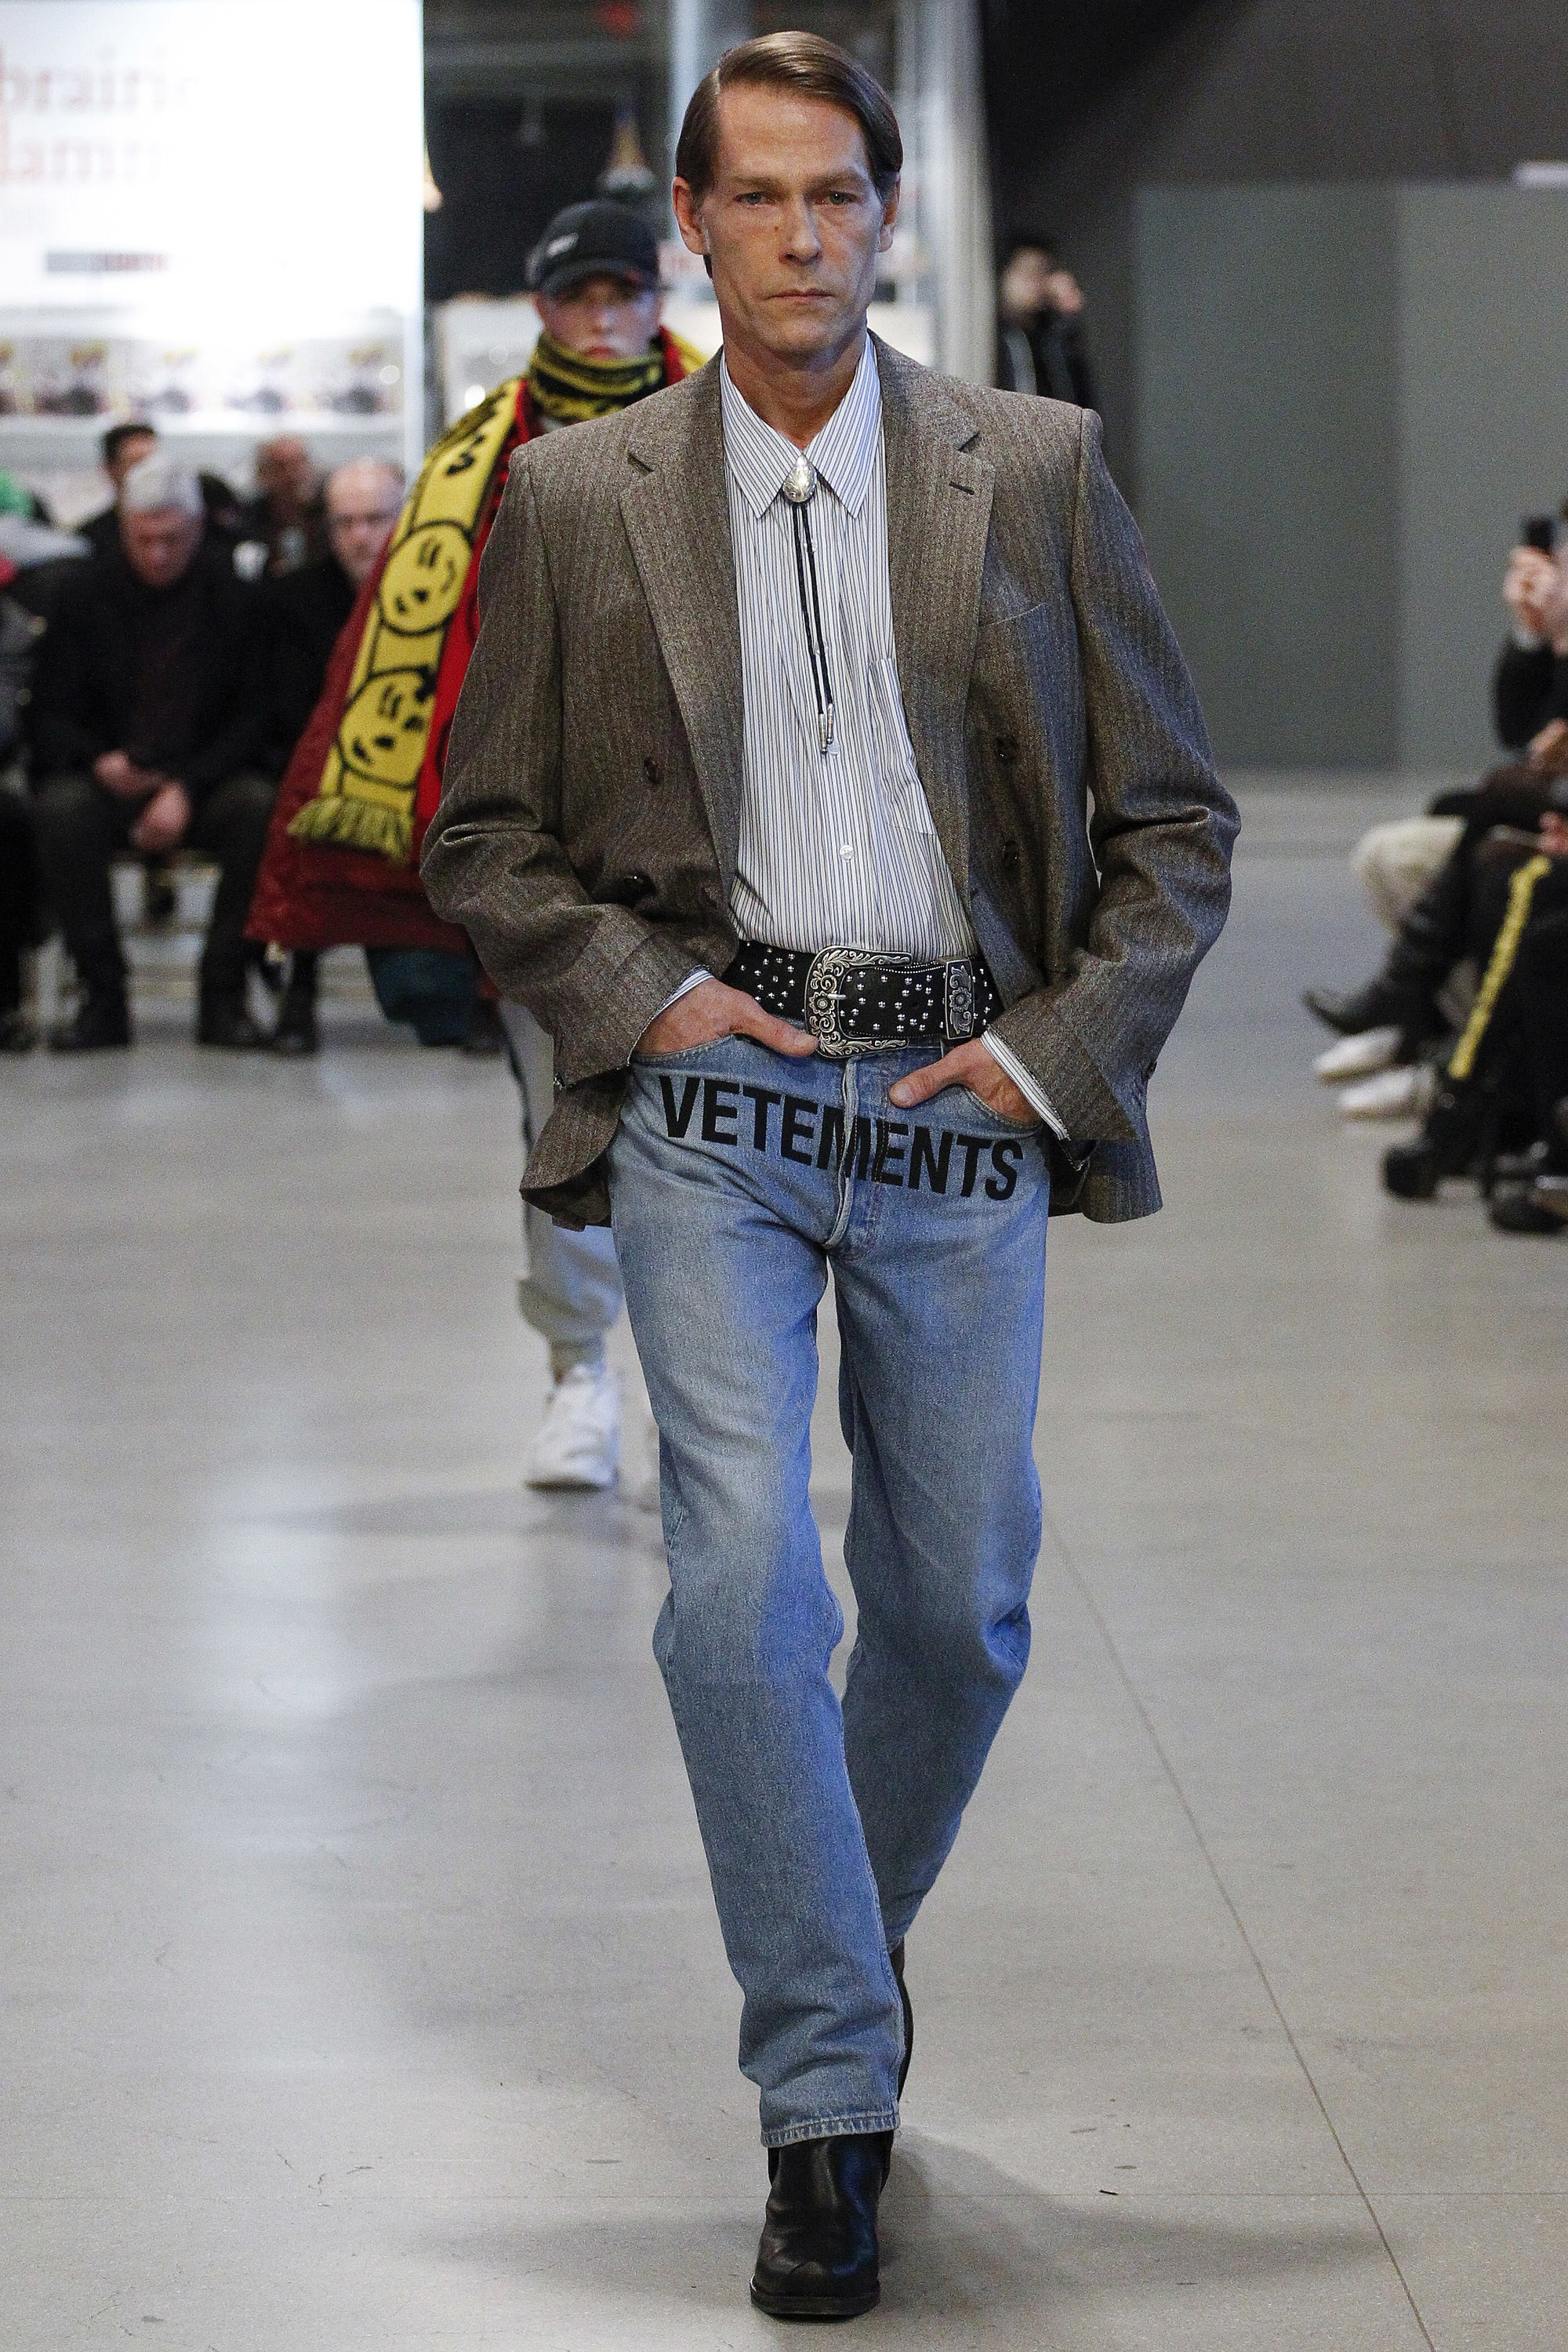 Vetements Invierno 2017. Foto: Vogue.